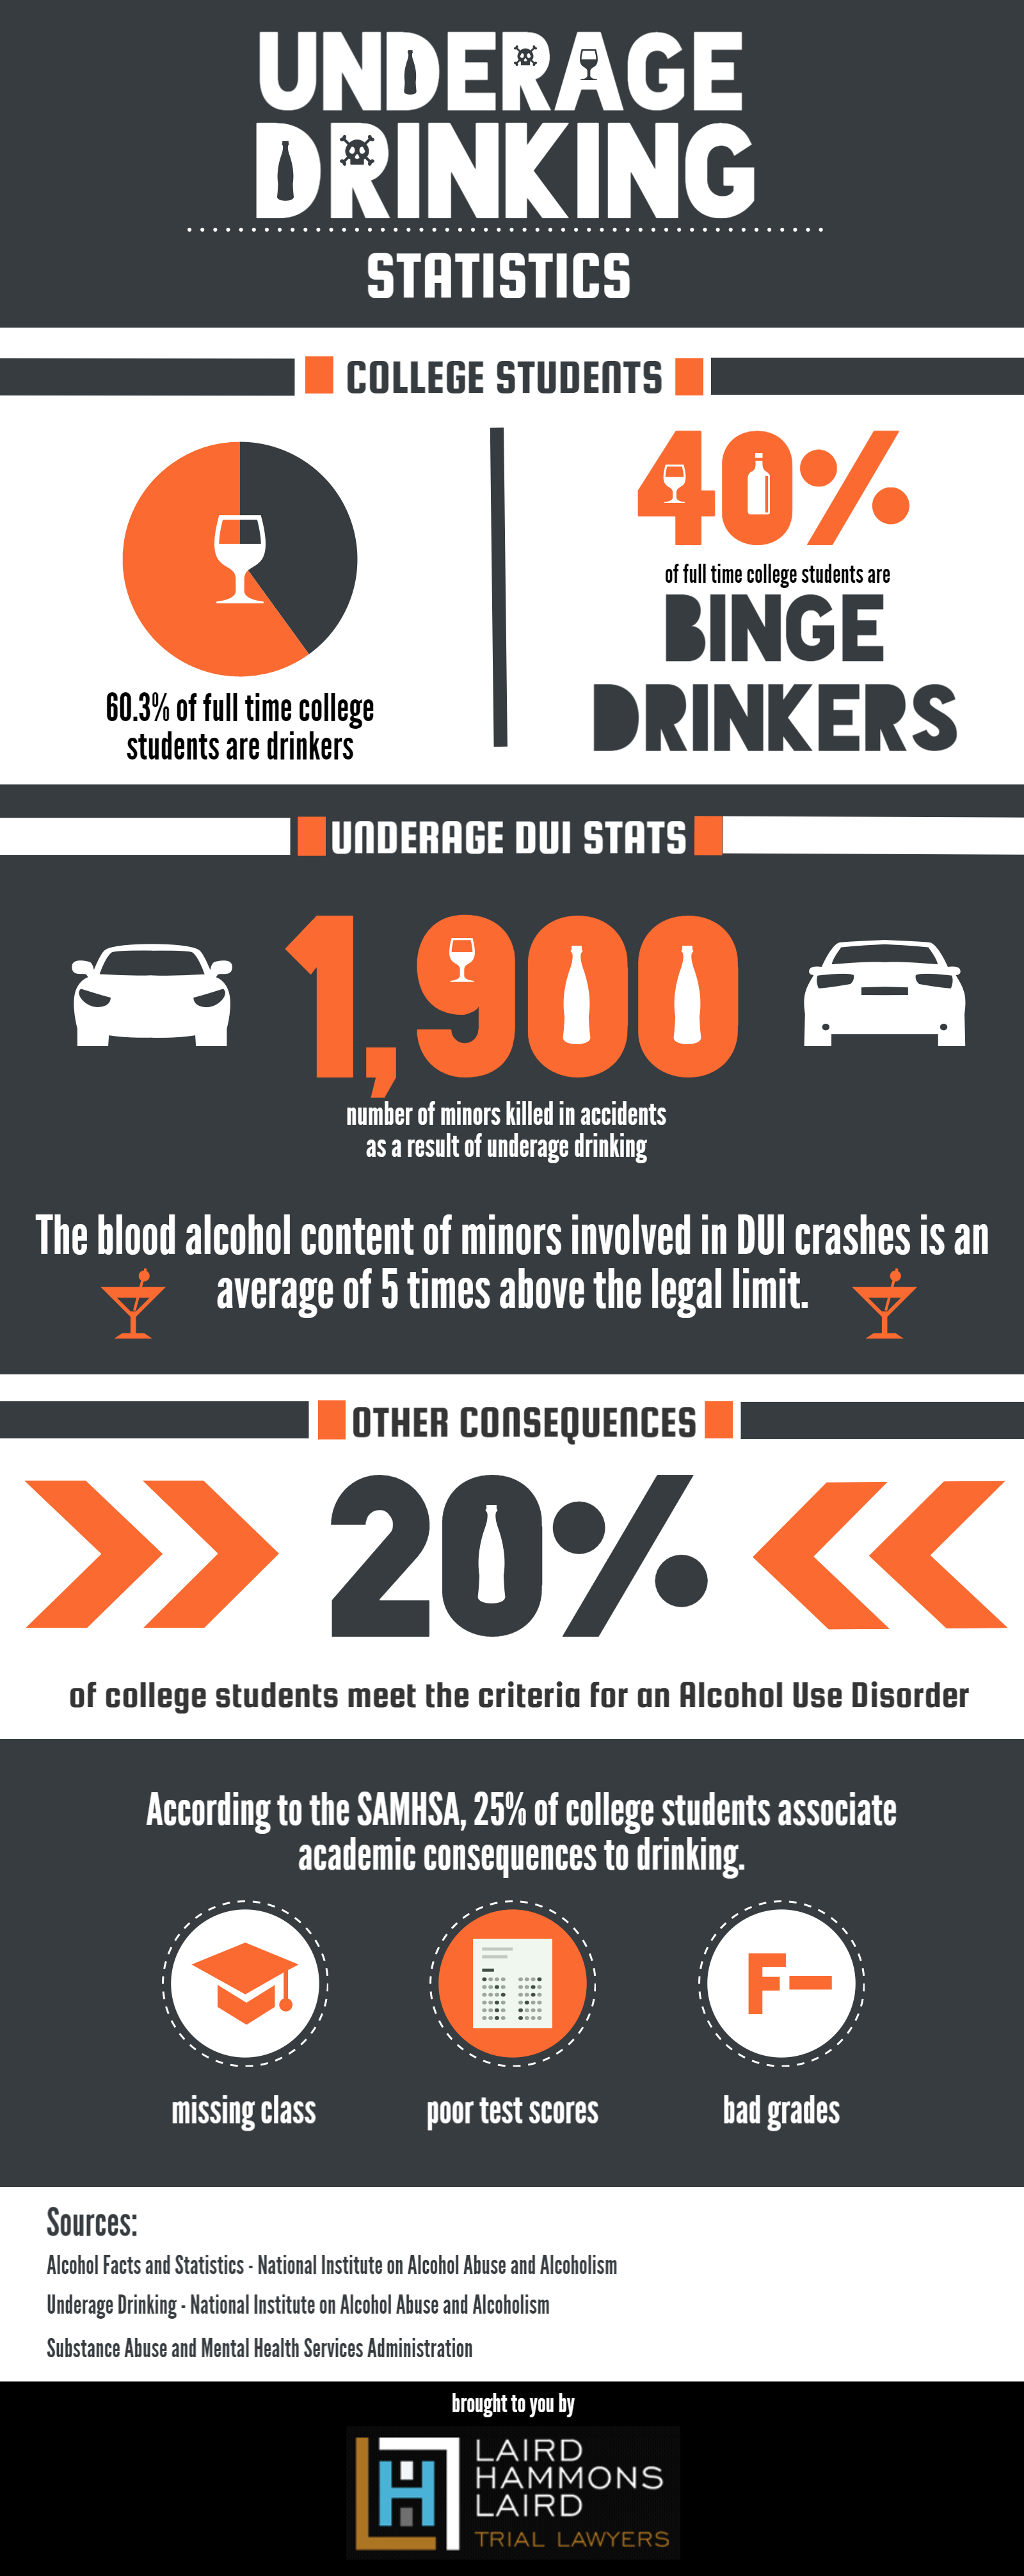 The penalties of underage drinking and drunk driving